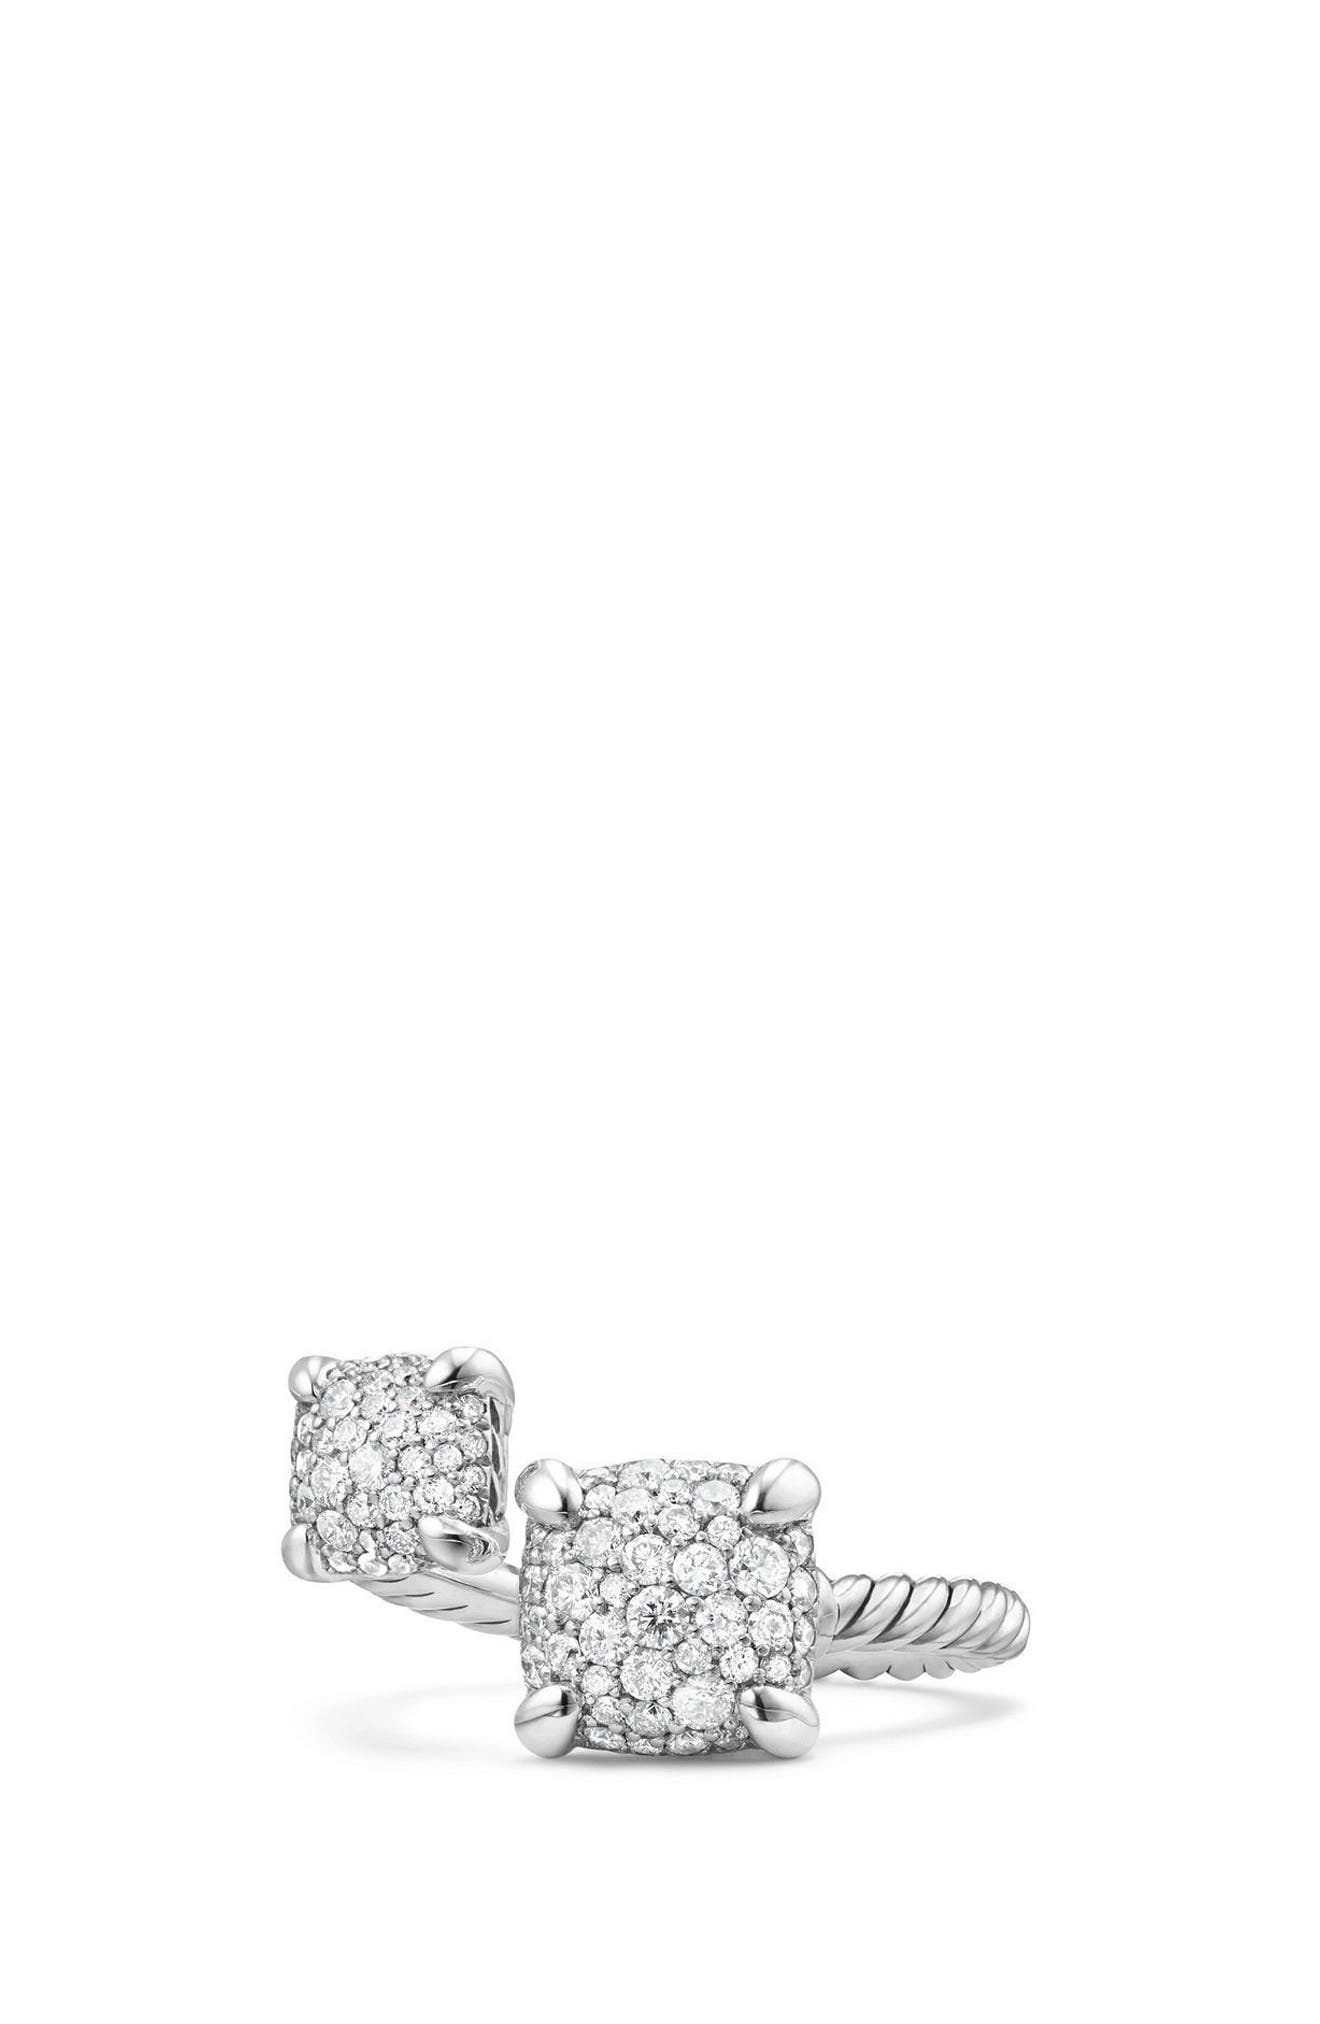 Châtelaine Bypass Ring with Diamonds,                             Main thumbnail 1, color,                             SILVER